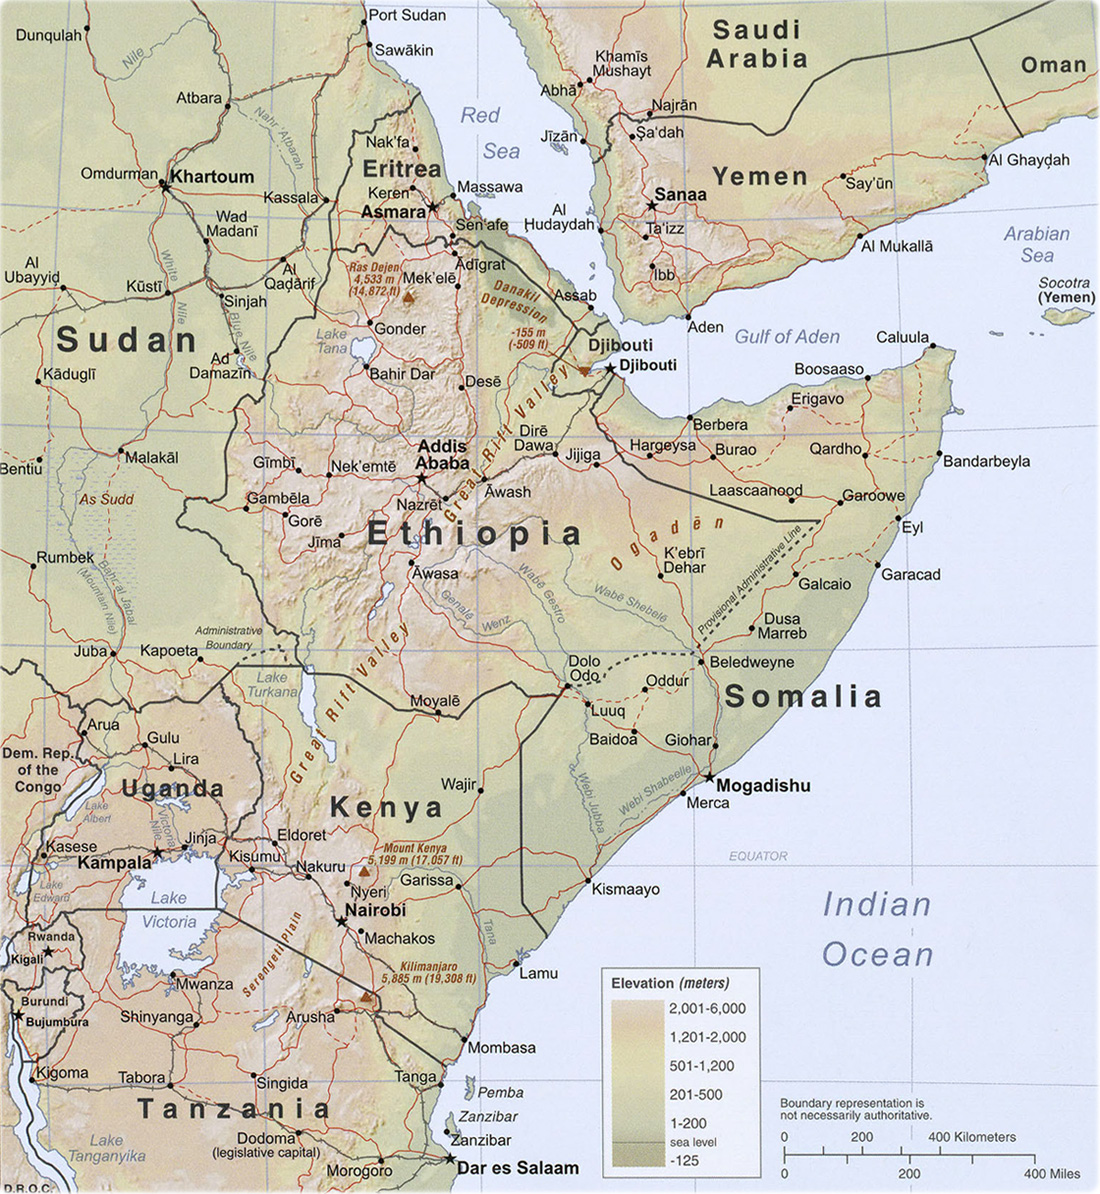 Map Of The Horn Of Africa Map of the Horn of Africa   Somalia, Ethiopia